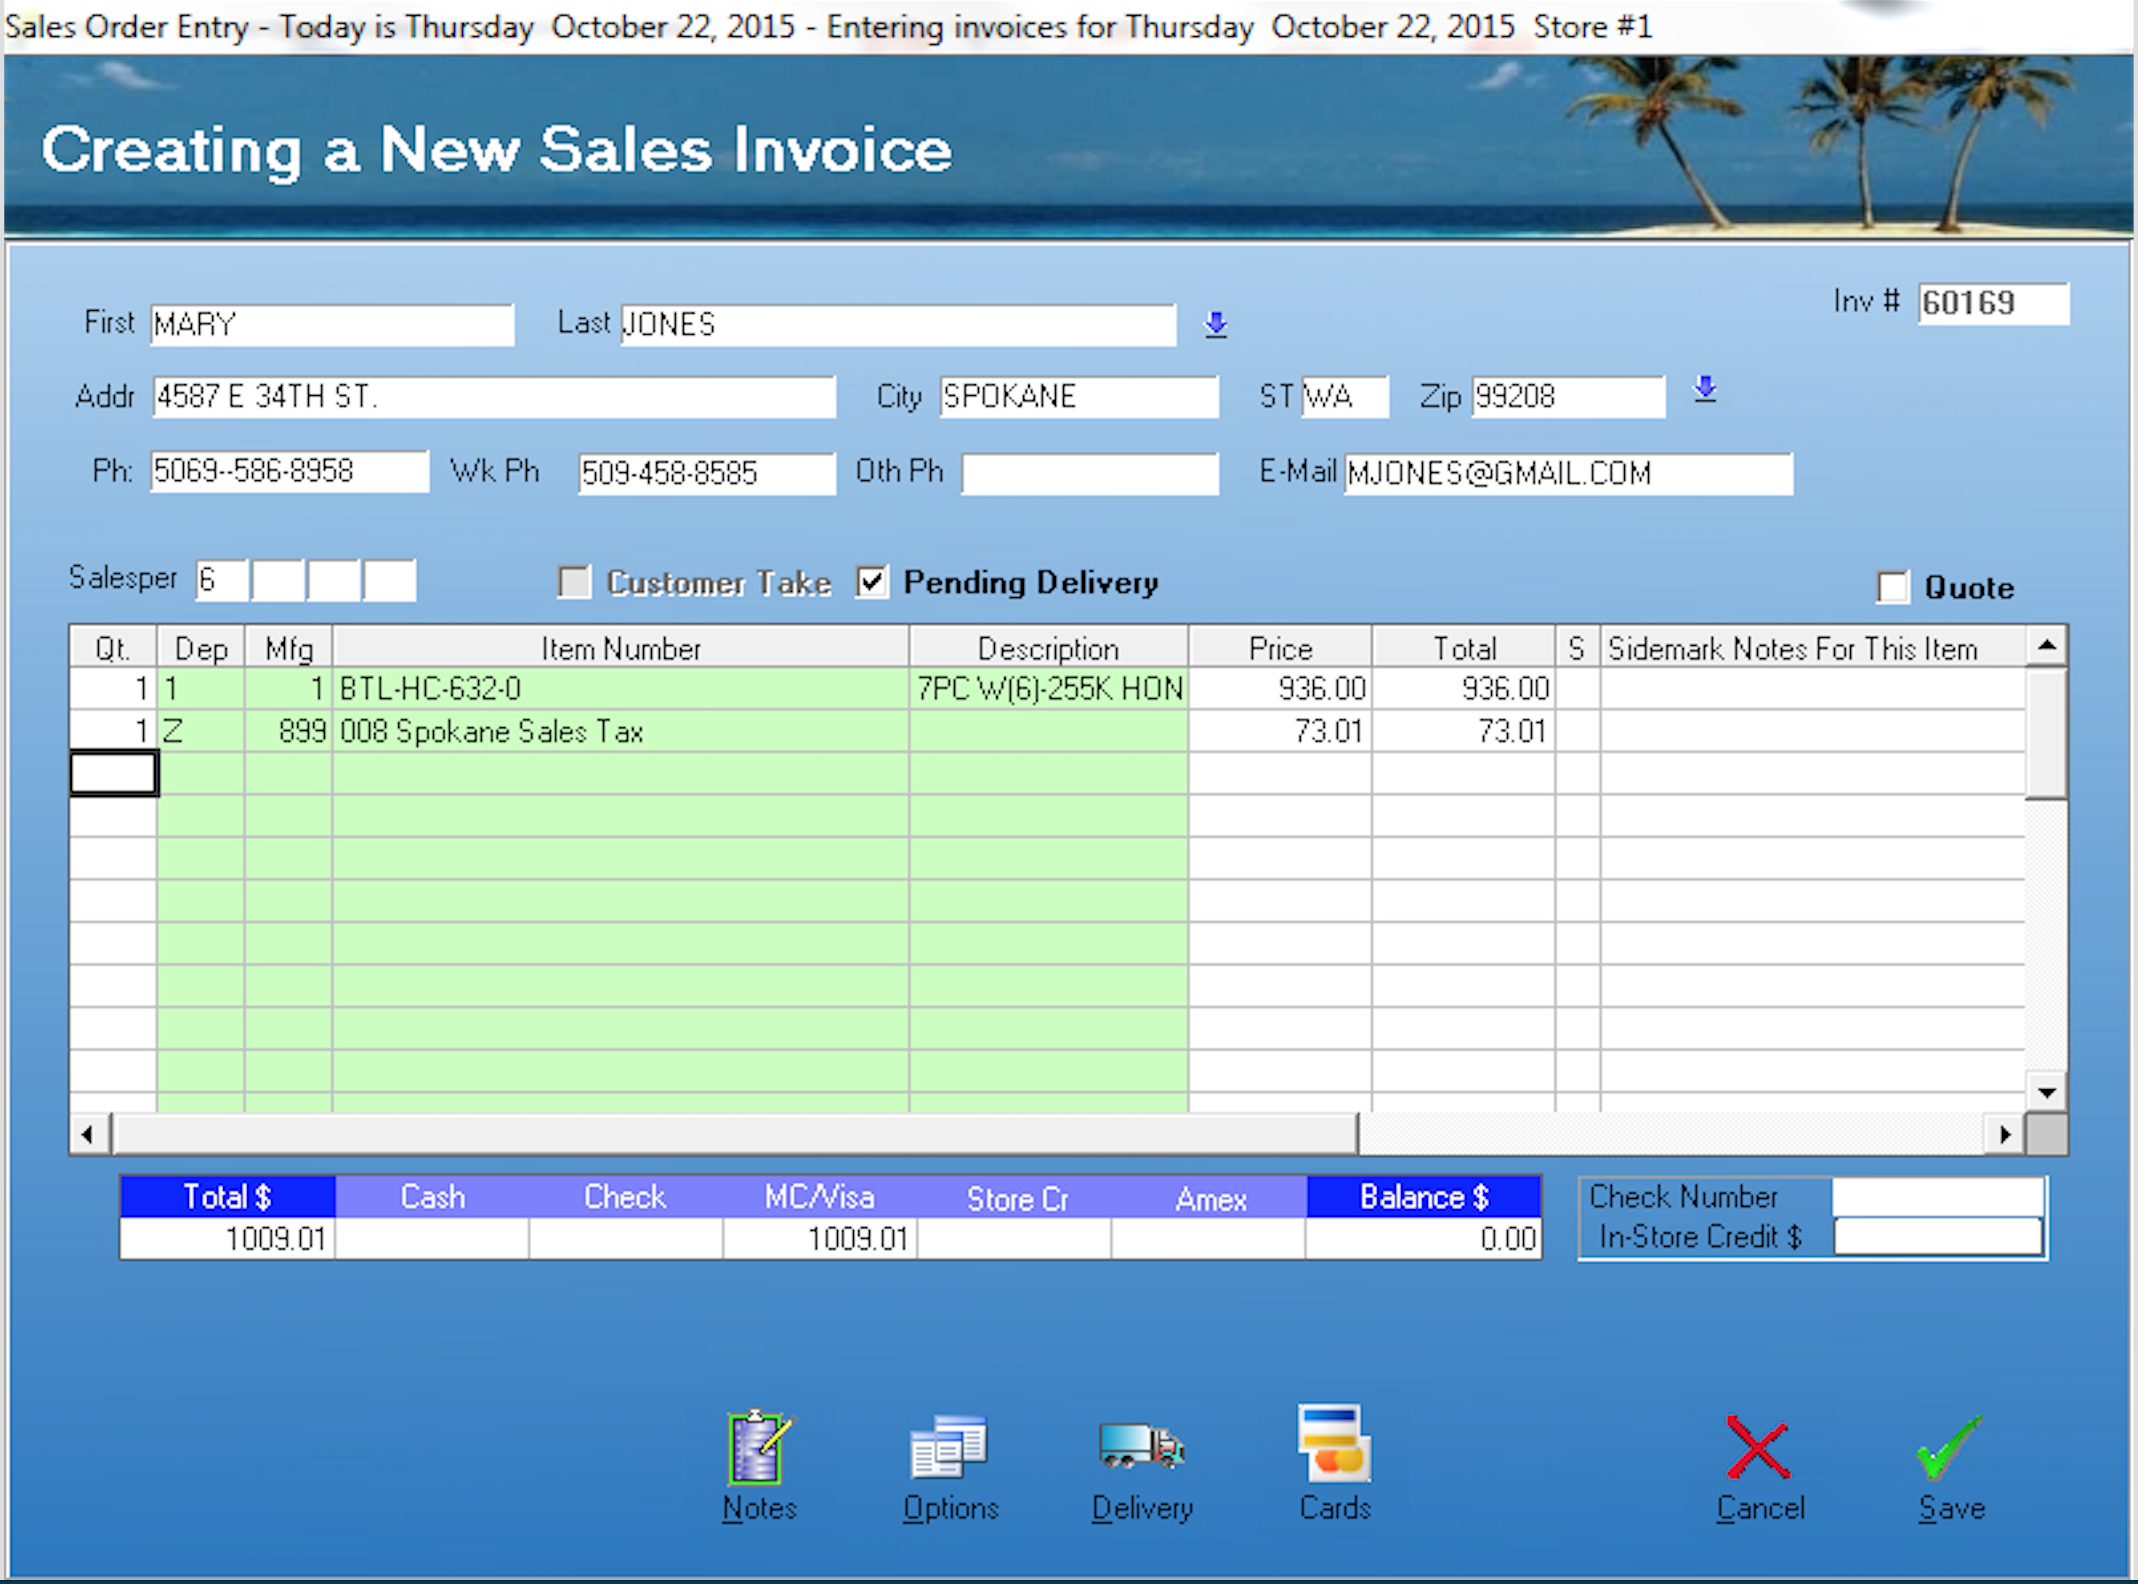 Sales invoice entry screen